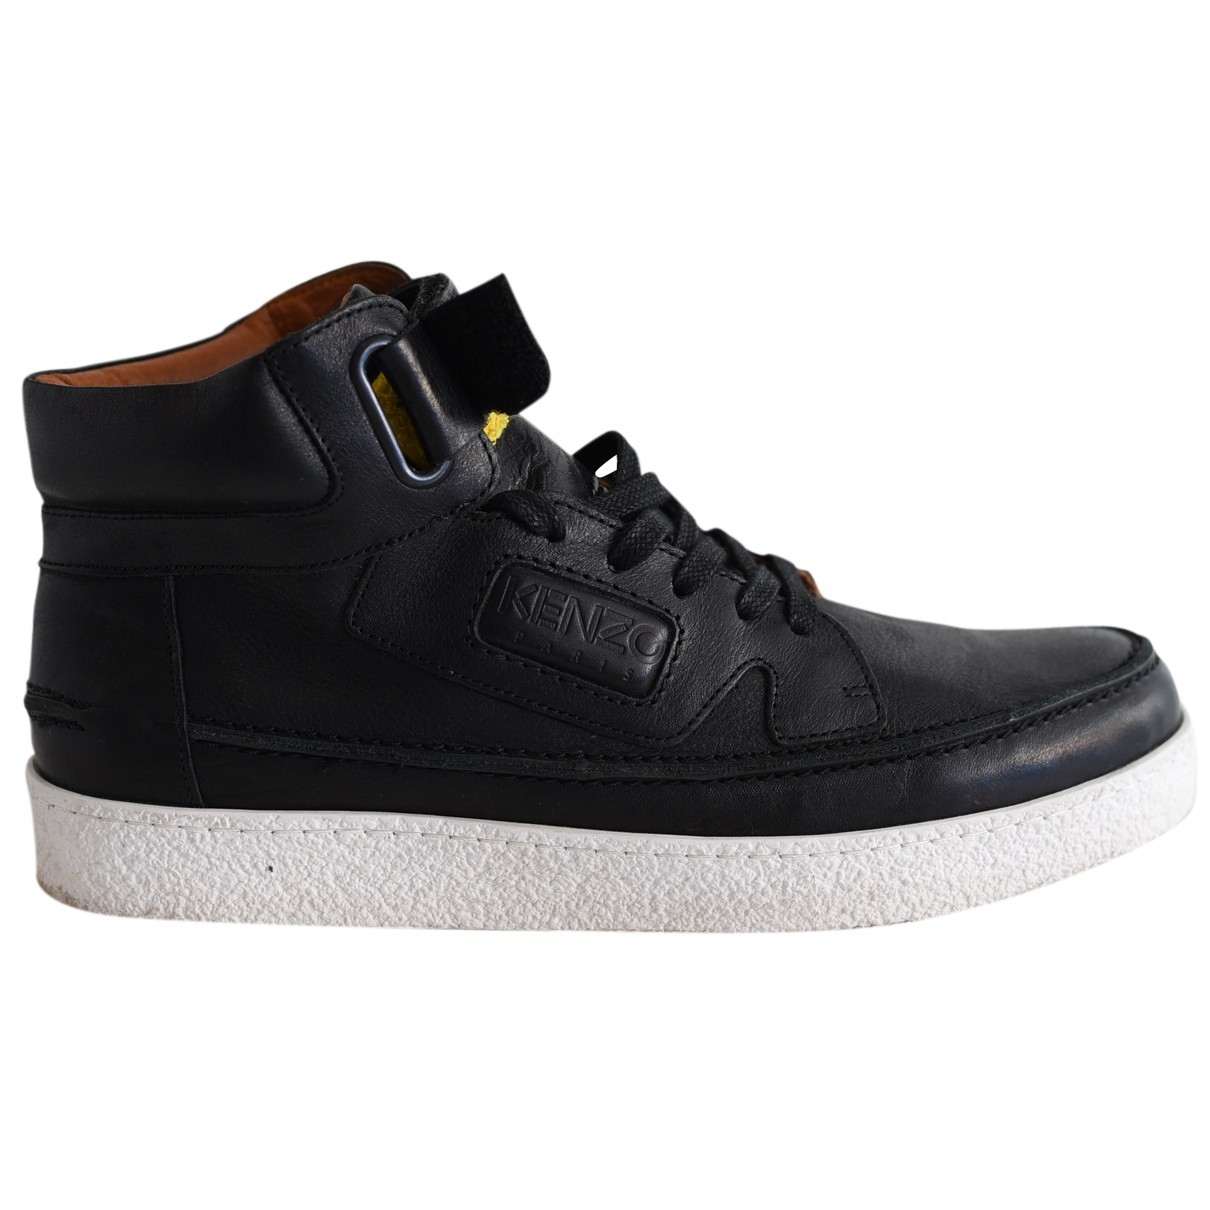 Kenzo N Black Leather Trainers for Men 43 EU